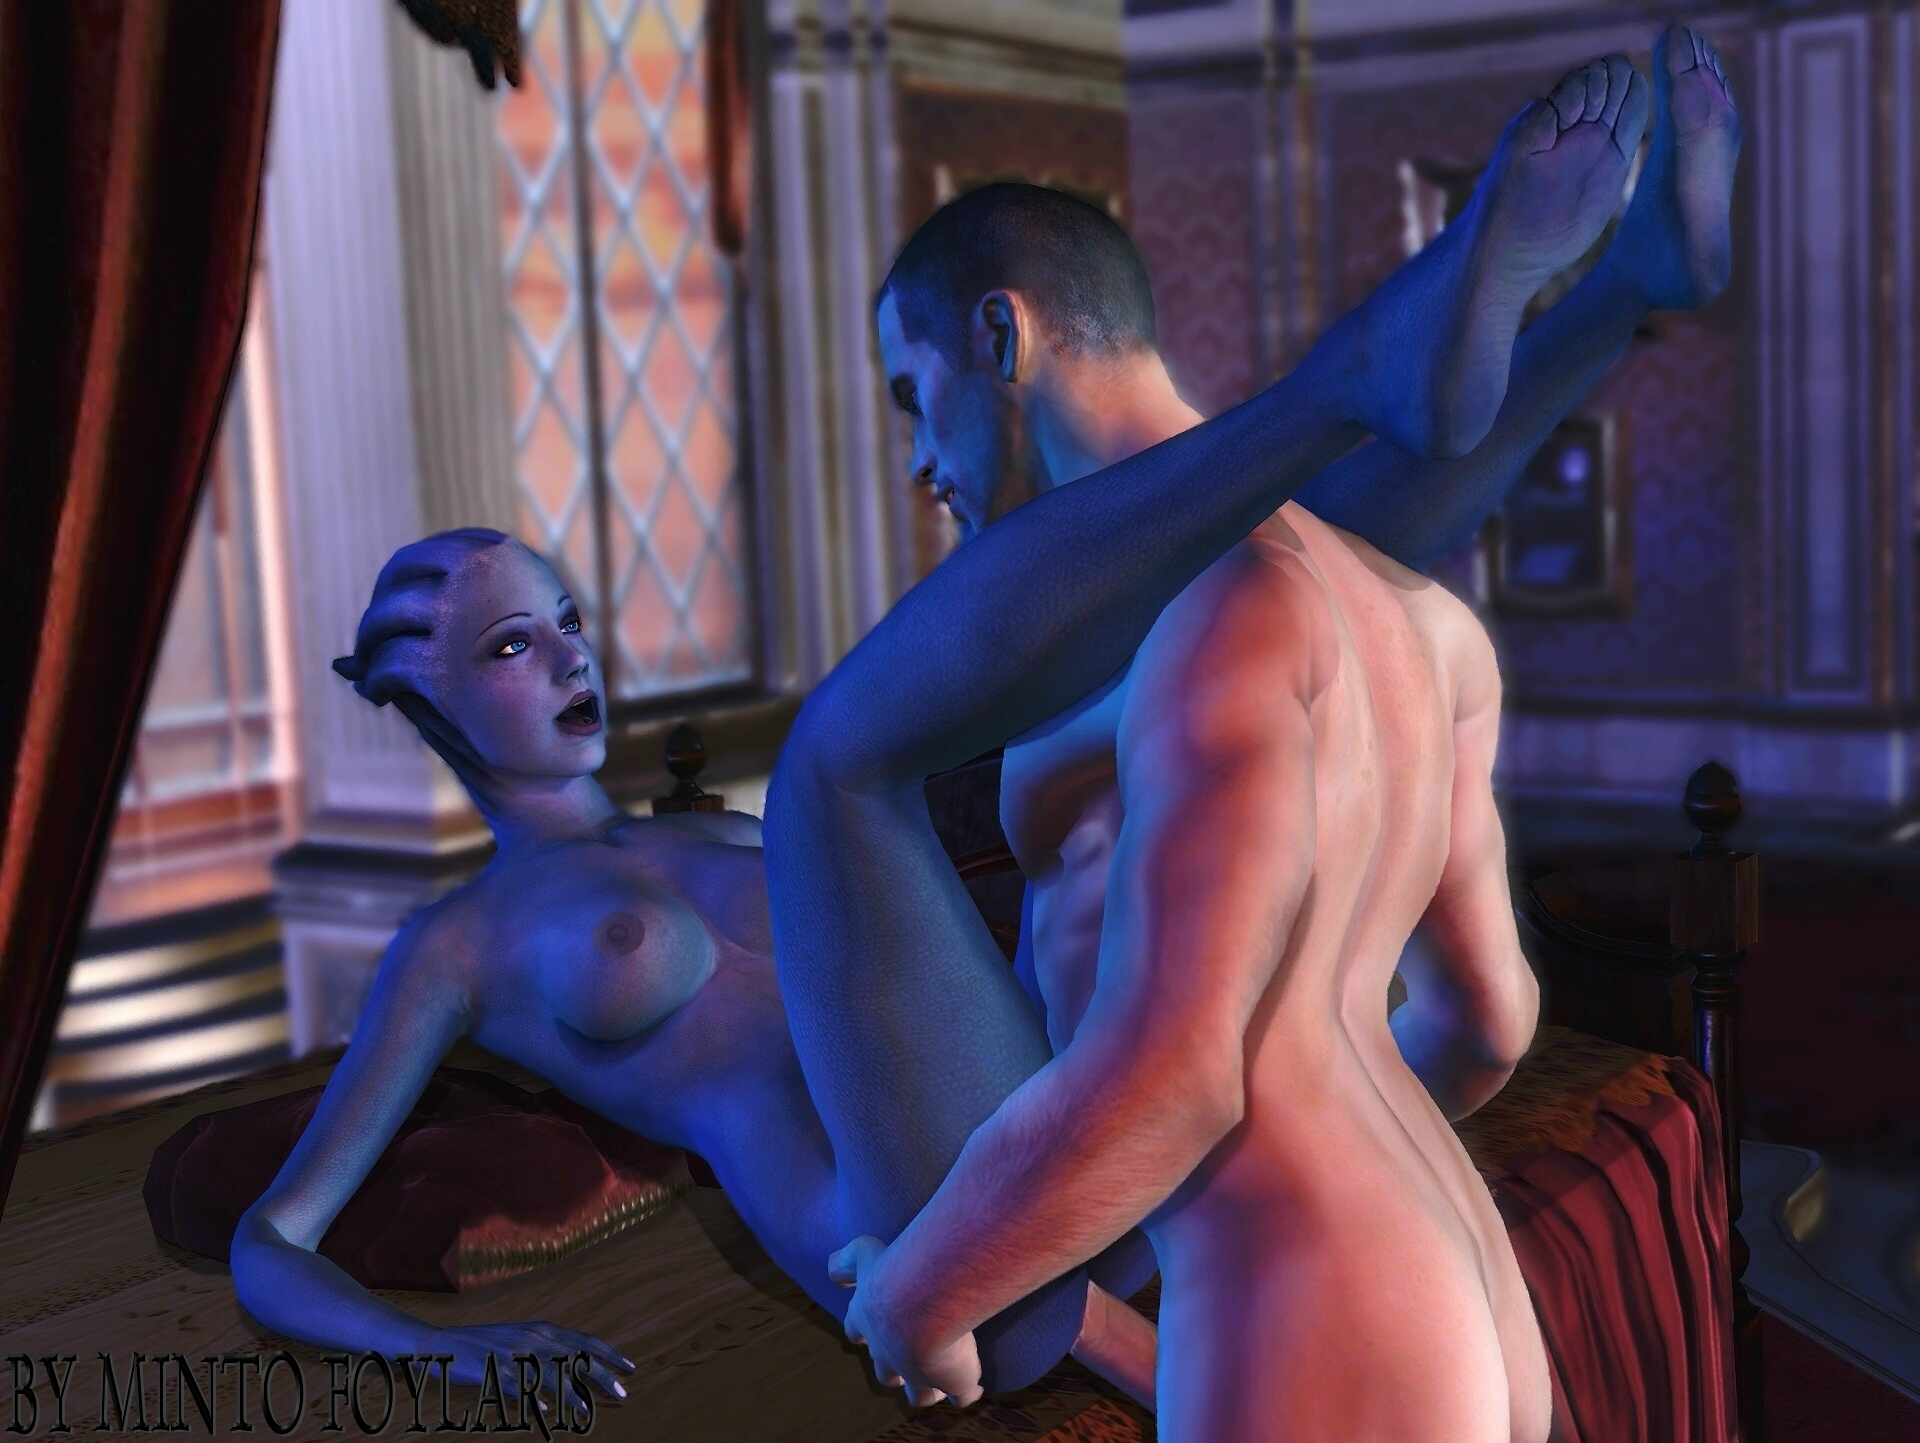 Mass effect liara porn picture video porncraft photo